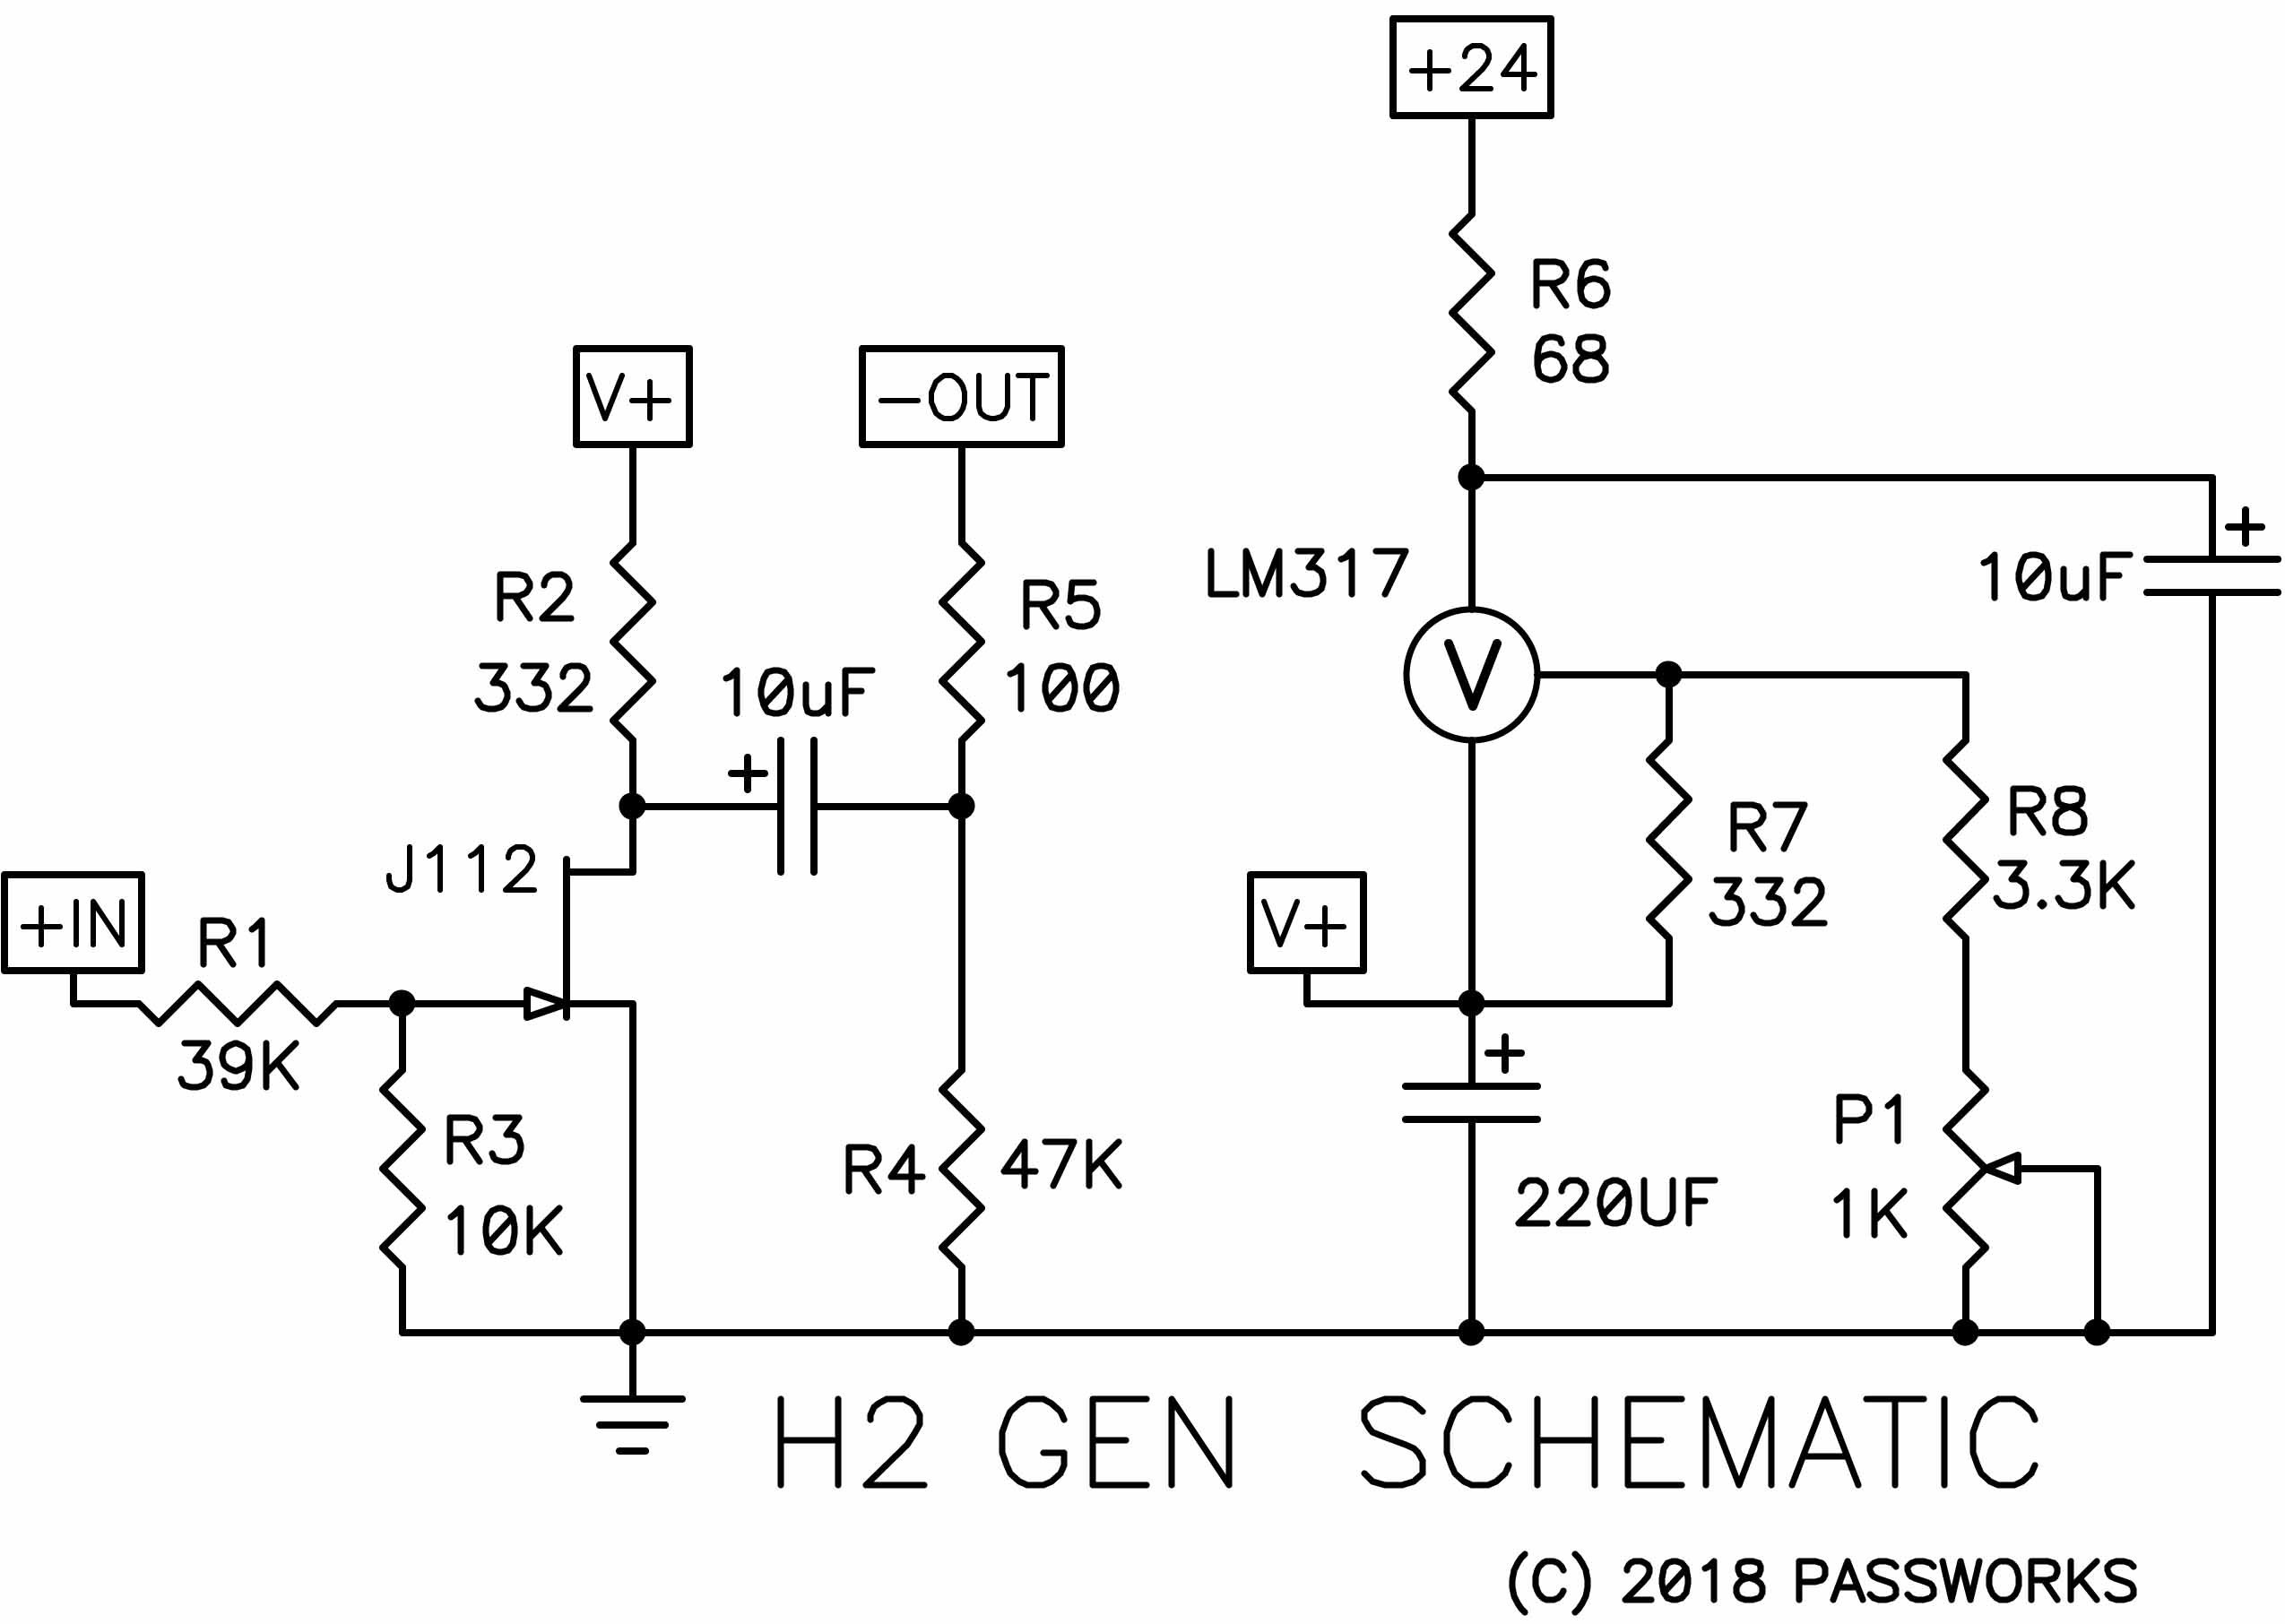 Pass H2 Harmonic Generator Positive Feedback Symmetrical Regulated Power Supply Schematic Circuits Here Is The Circuit That I Made For You To Play With Note Only One Channel Shown But Regulator Serves Both Channels